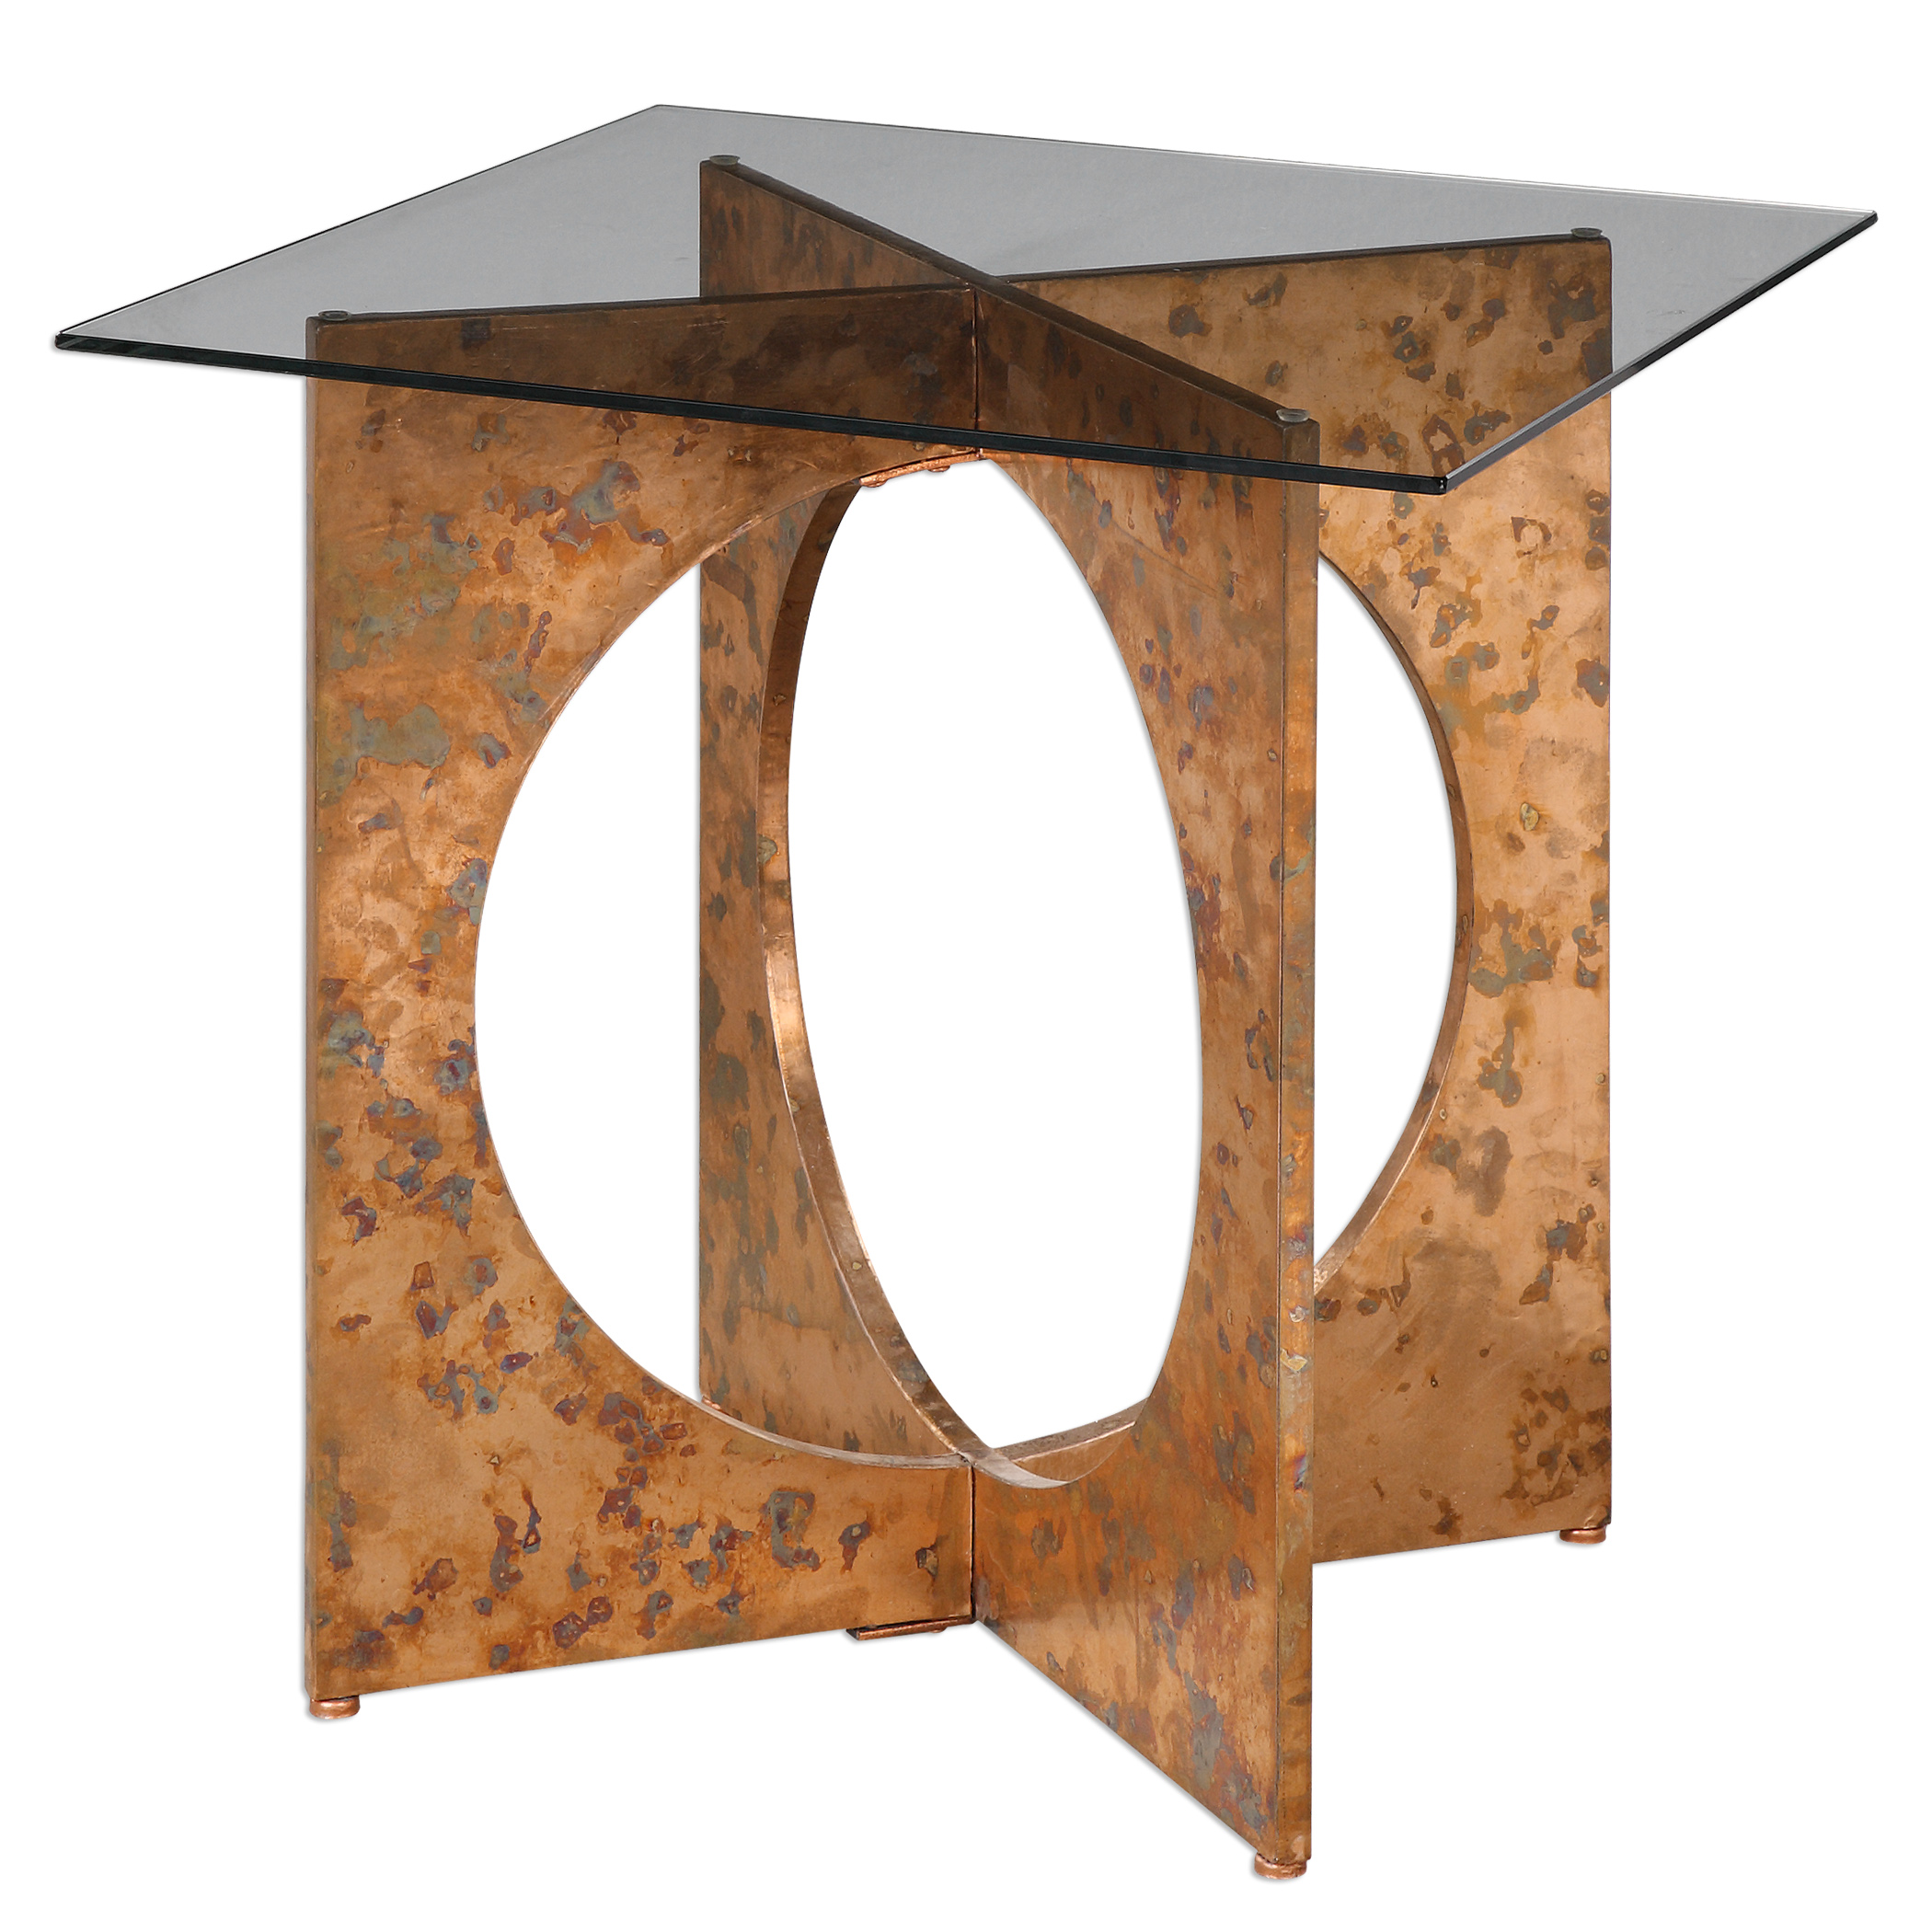 Uttermost Accent Furniture Darry Copper Accent Table - Item Number: 24621